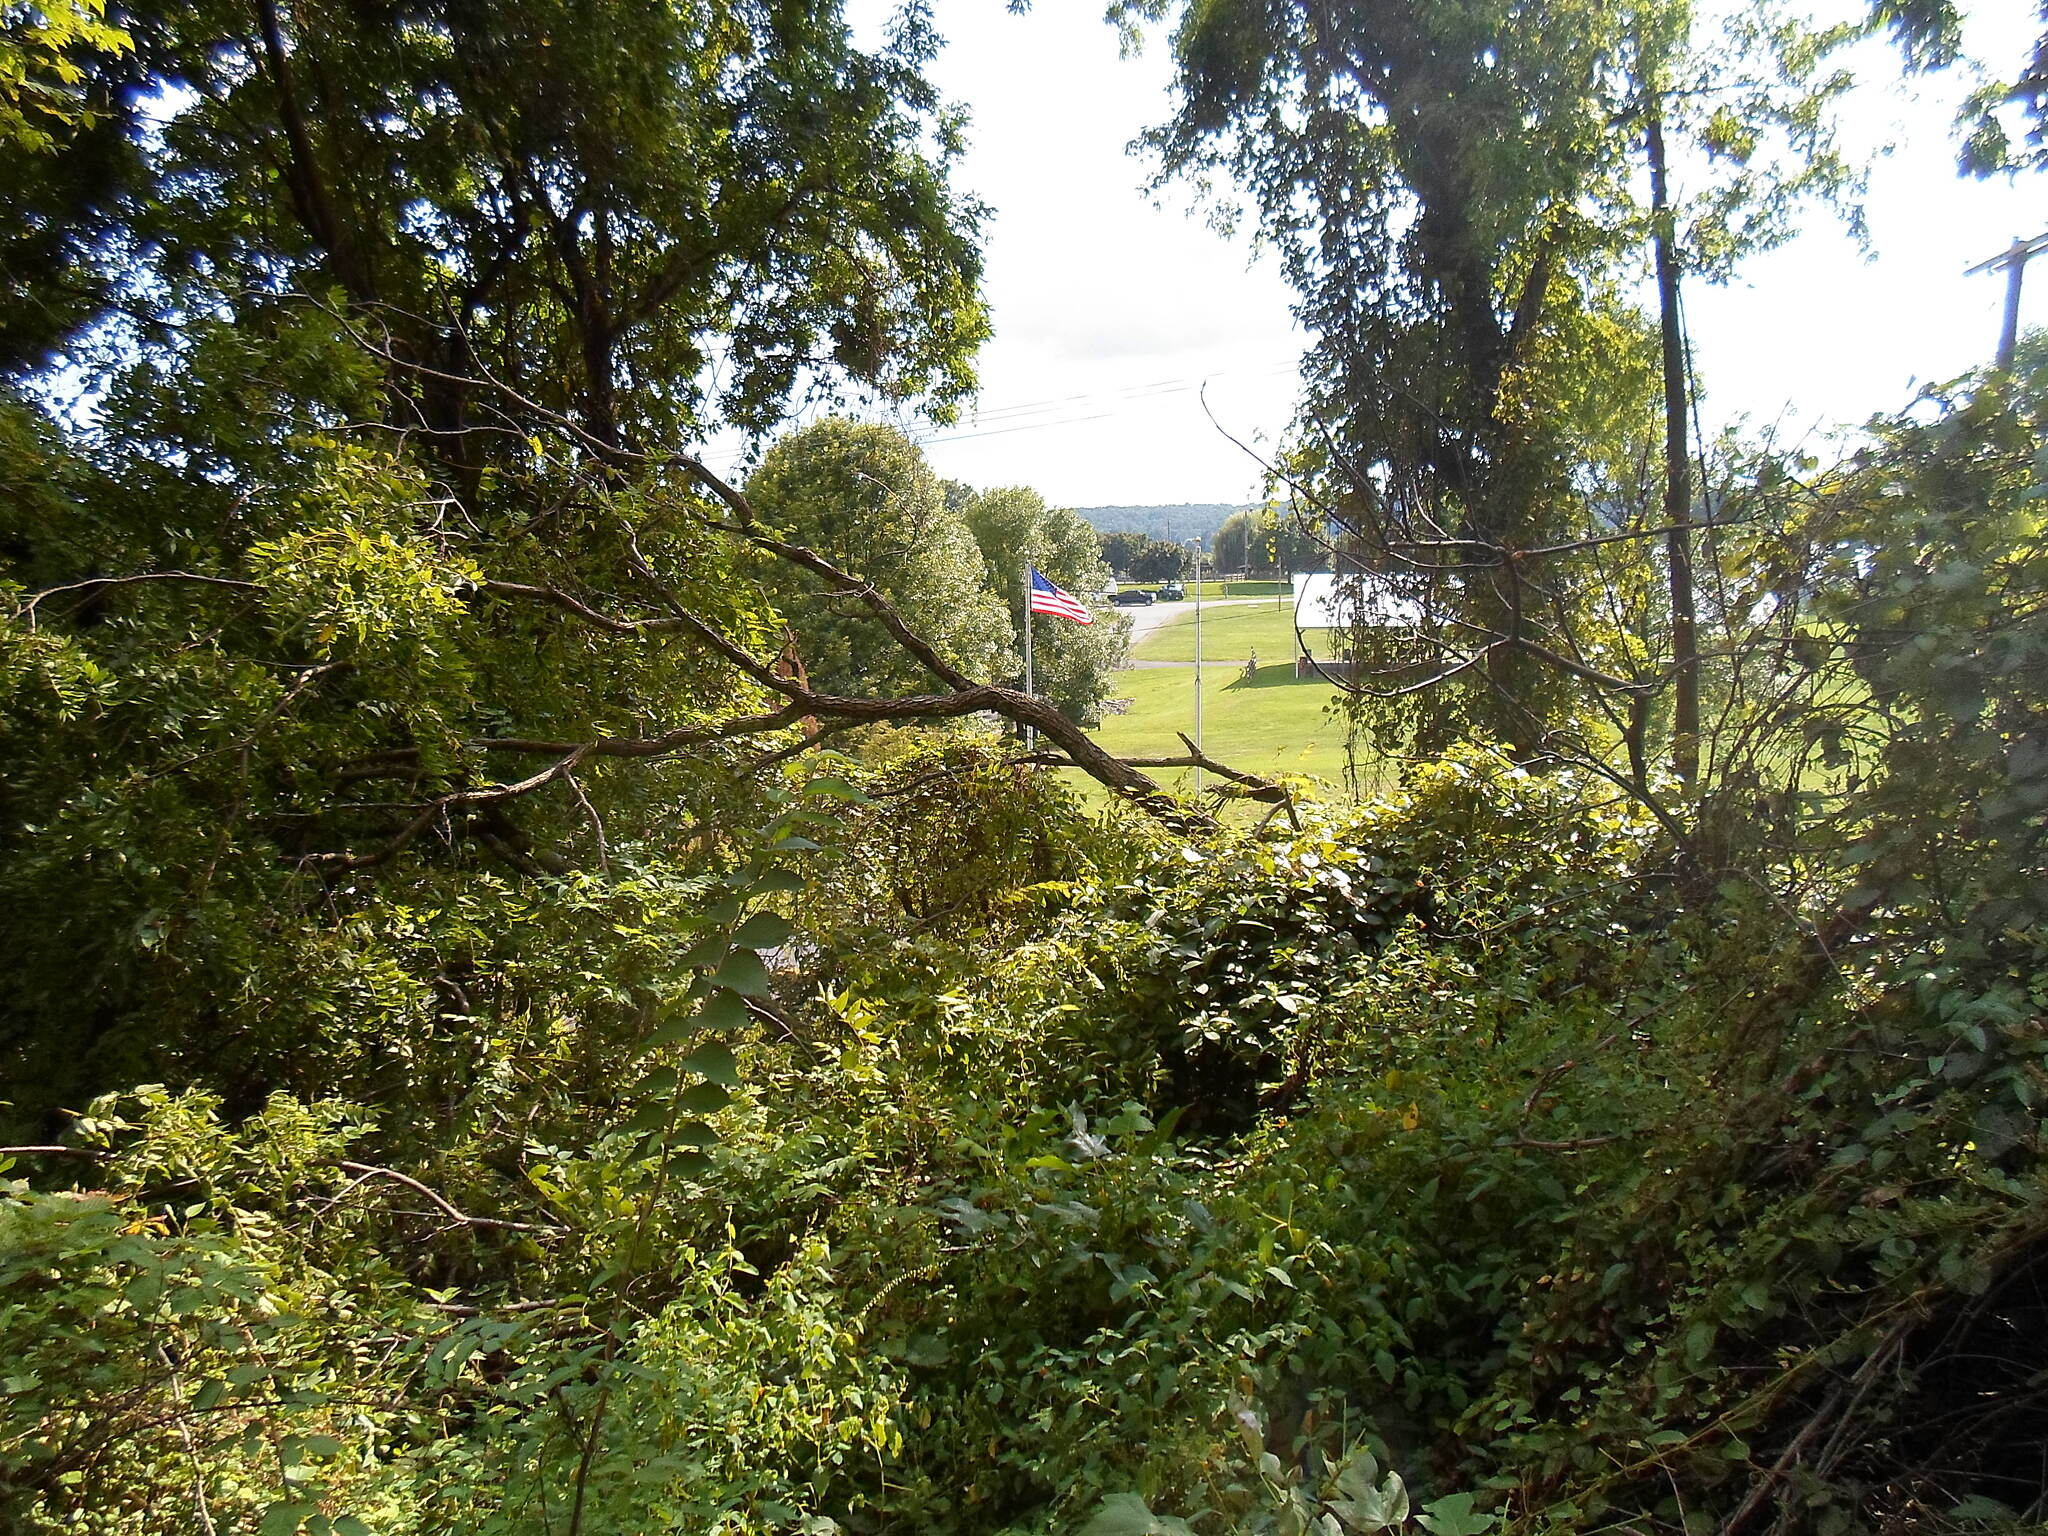 MA & PA Heritage Trail Ma & Pa Heritage Trail Looking through the trees toward the Harford County Equine Center and fairgrounds.